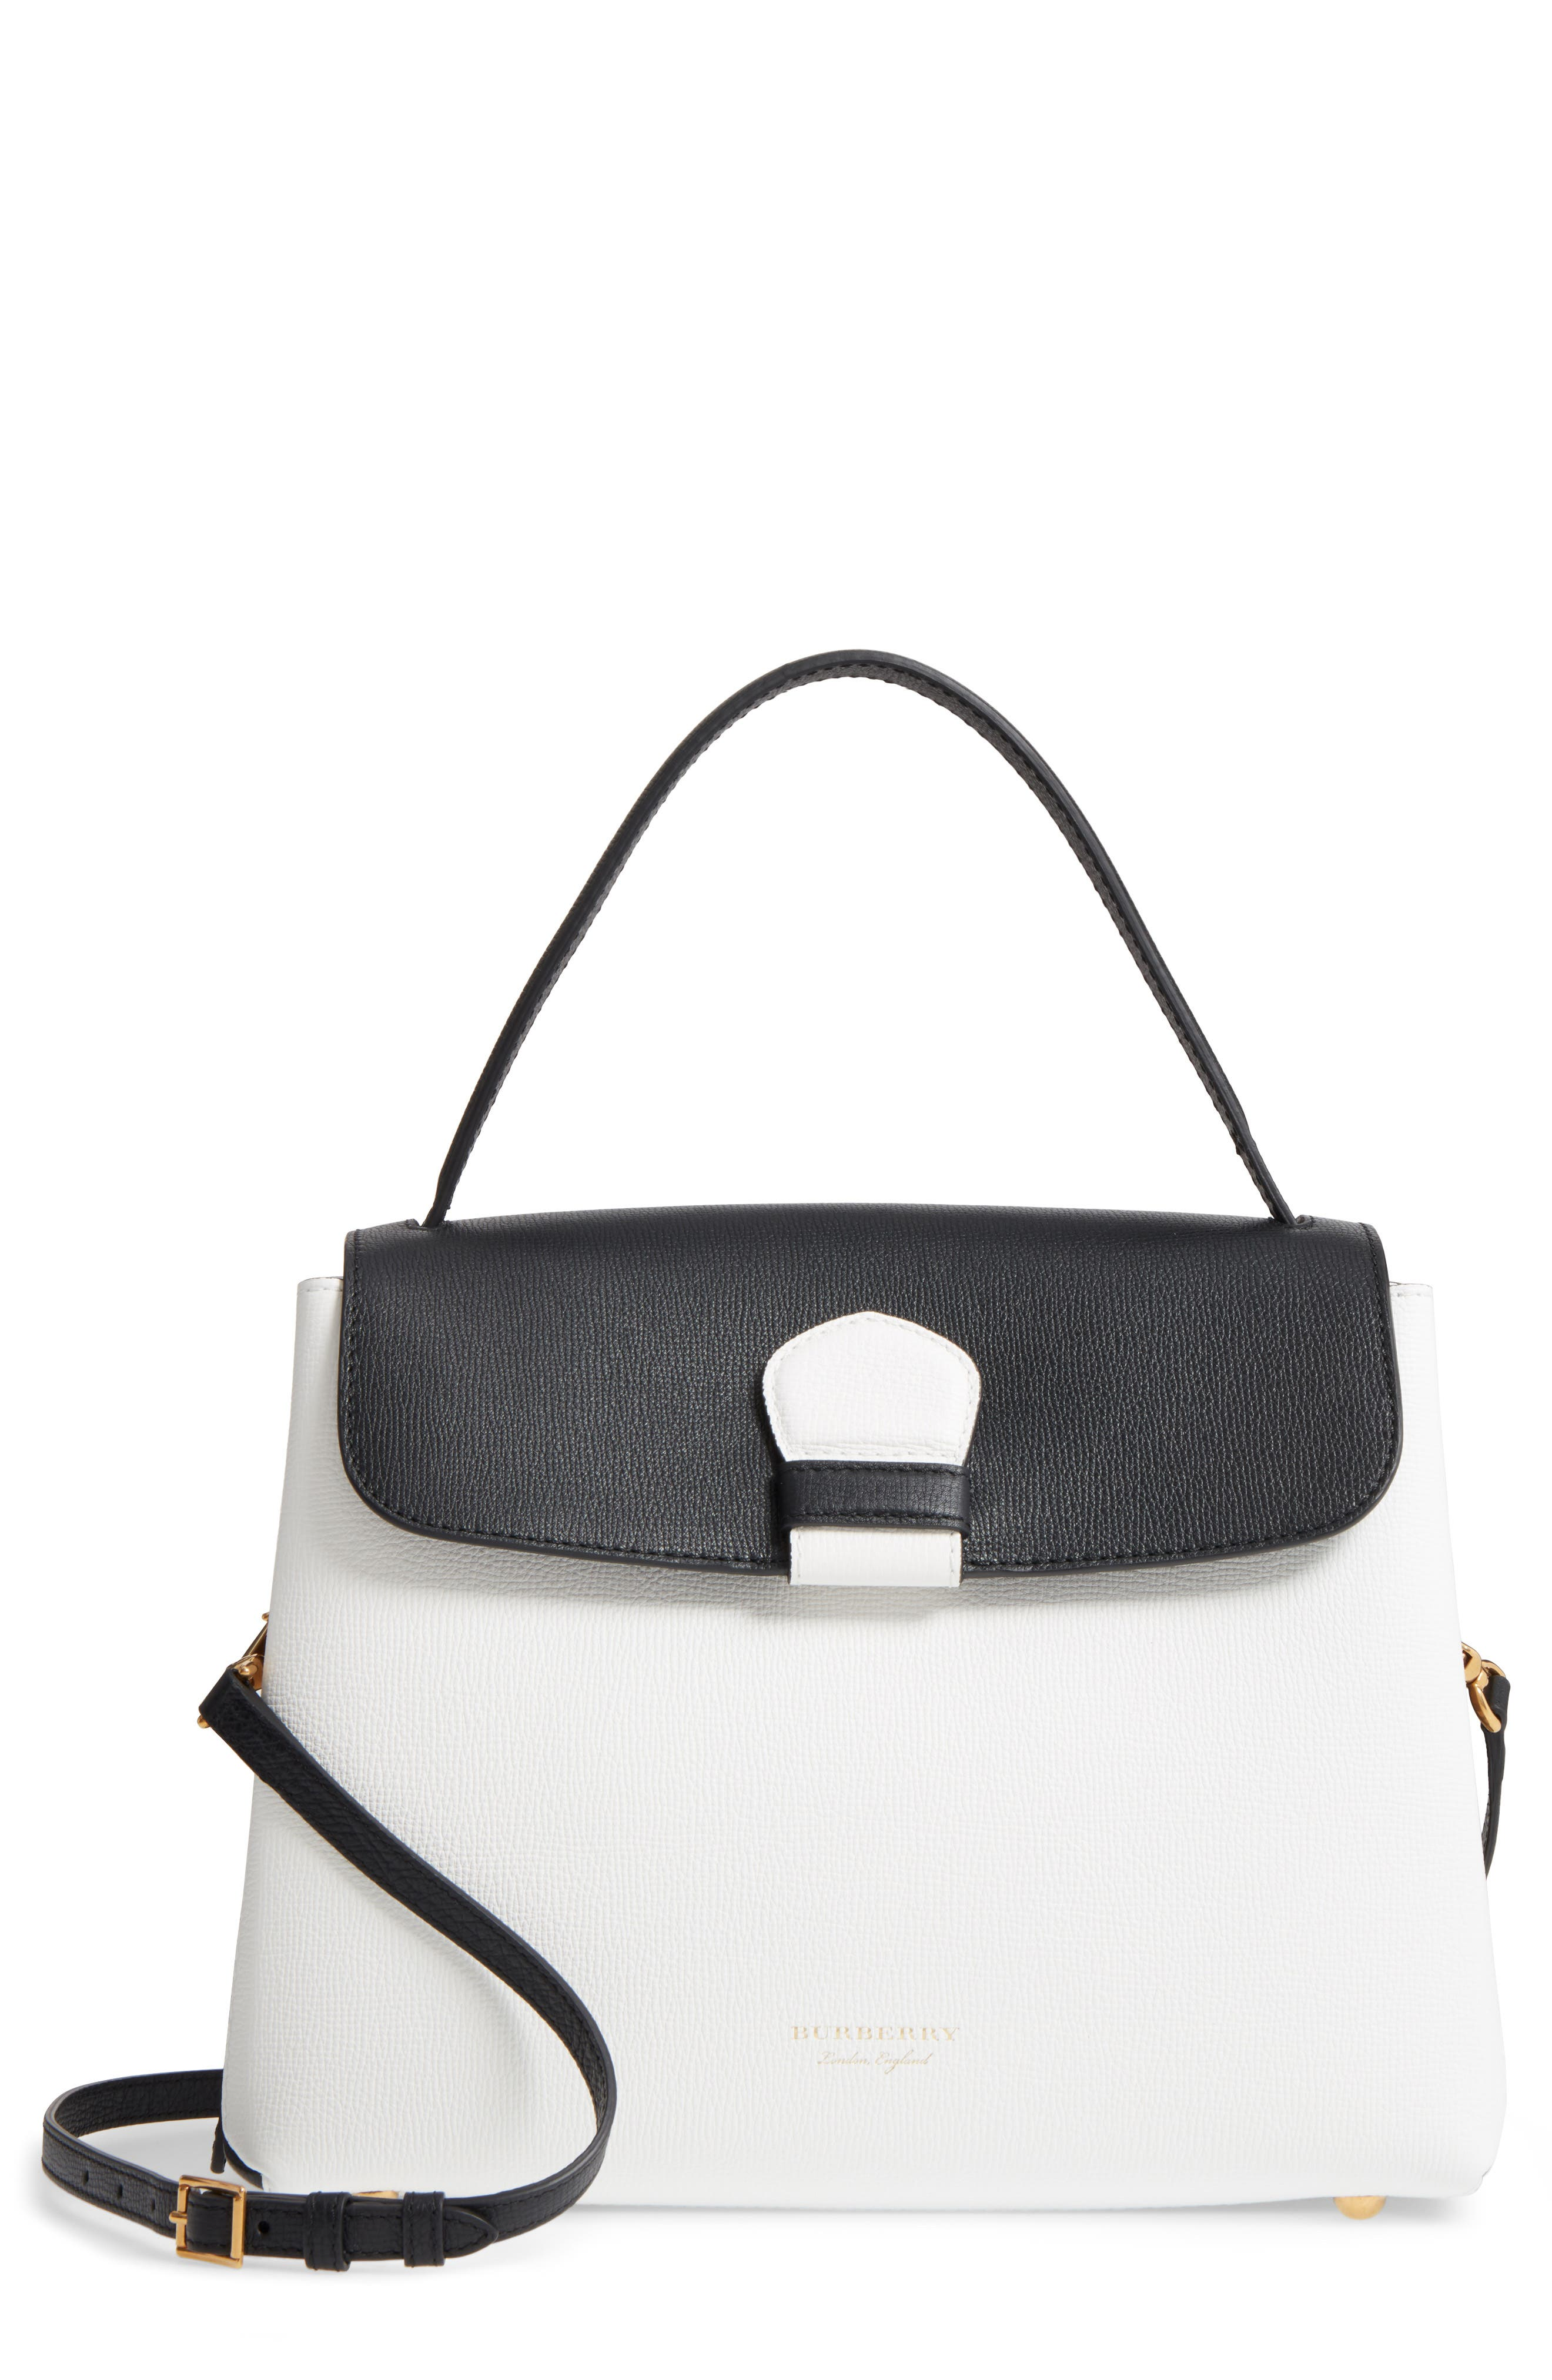 Medium Camberley Colorblock Leather & House Check Top Handle Satchel,                             Main thumbnail 1, color,                             White/ Black